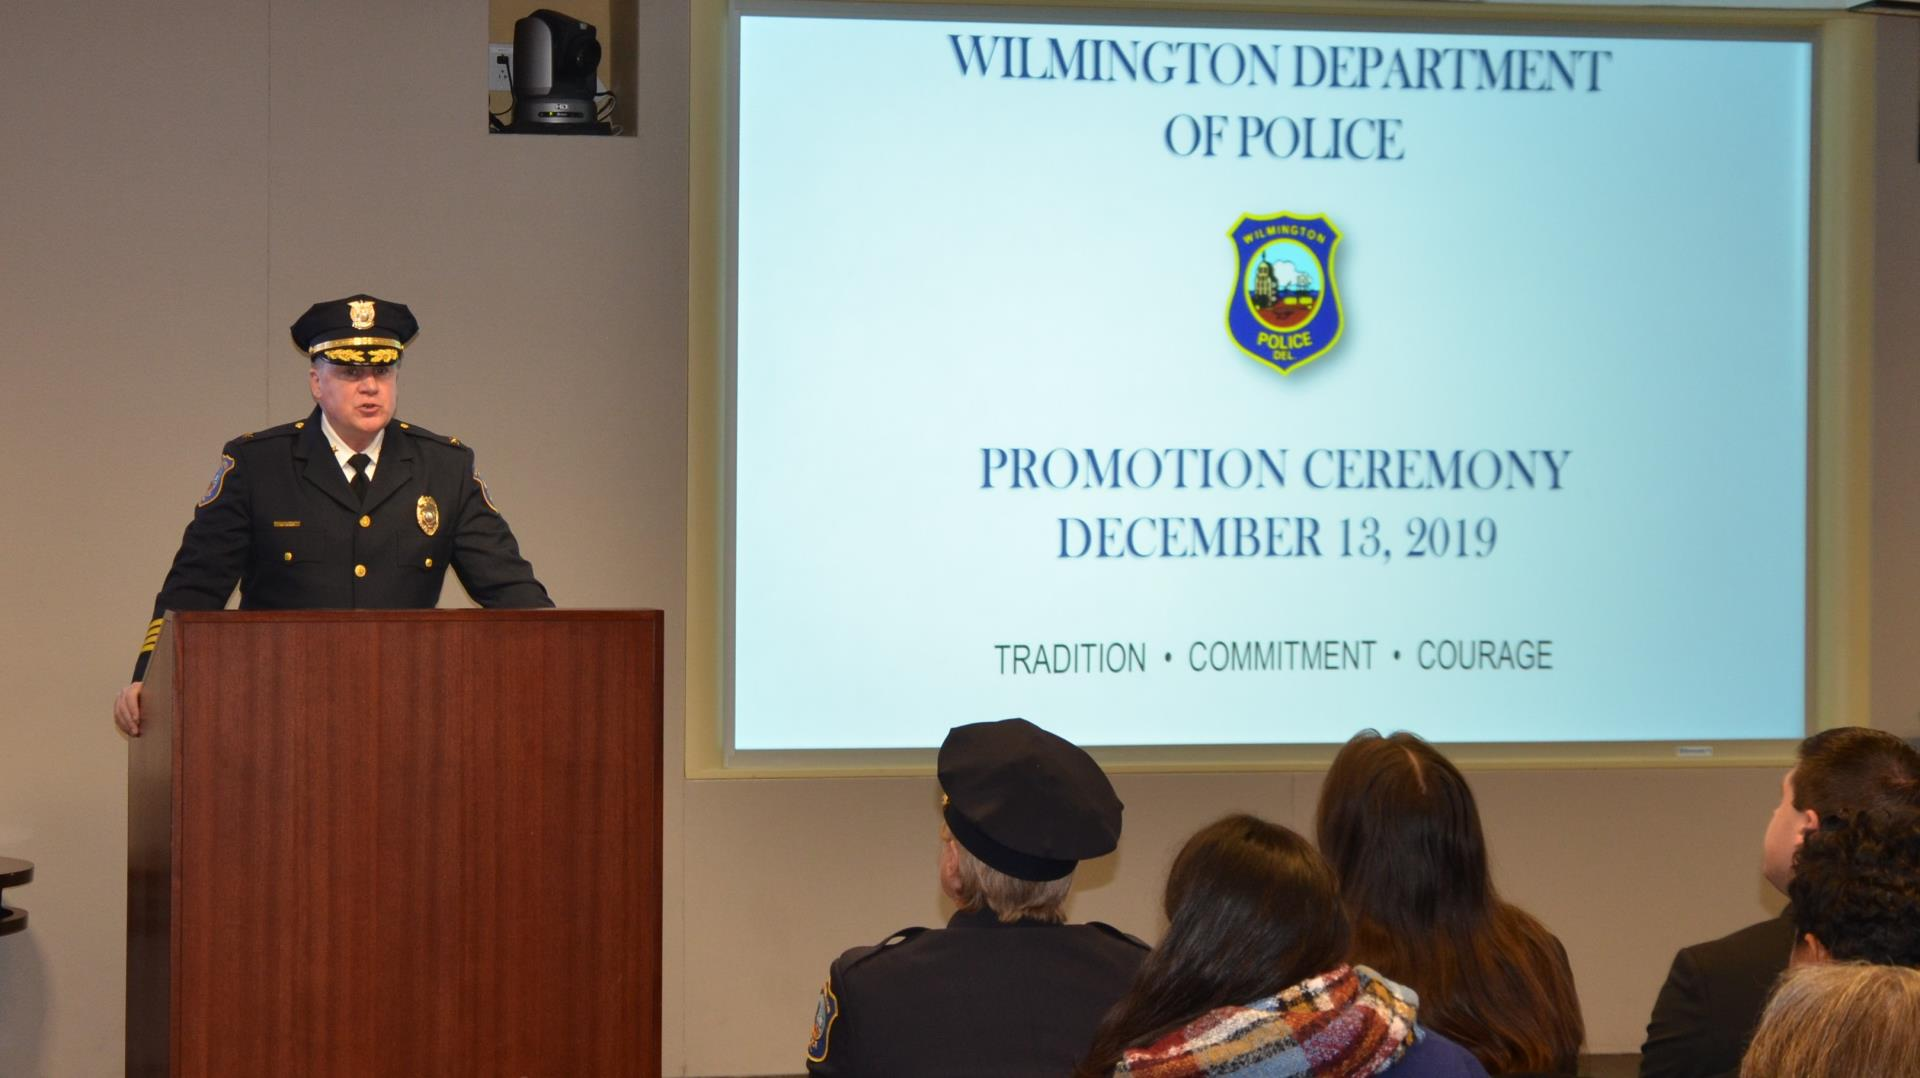 WPD Promotion Ceremony 2019 - 2